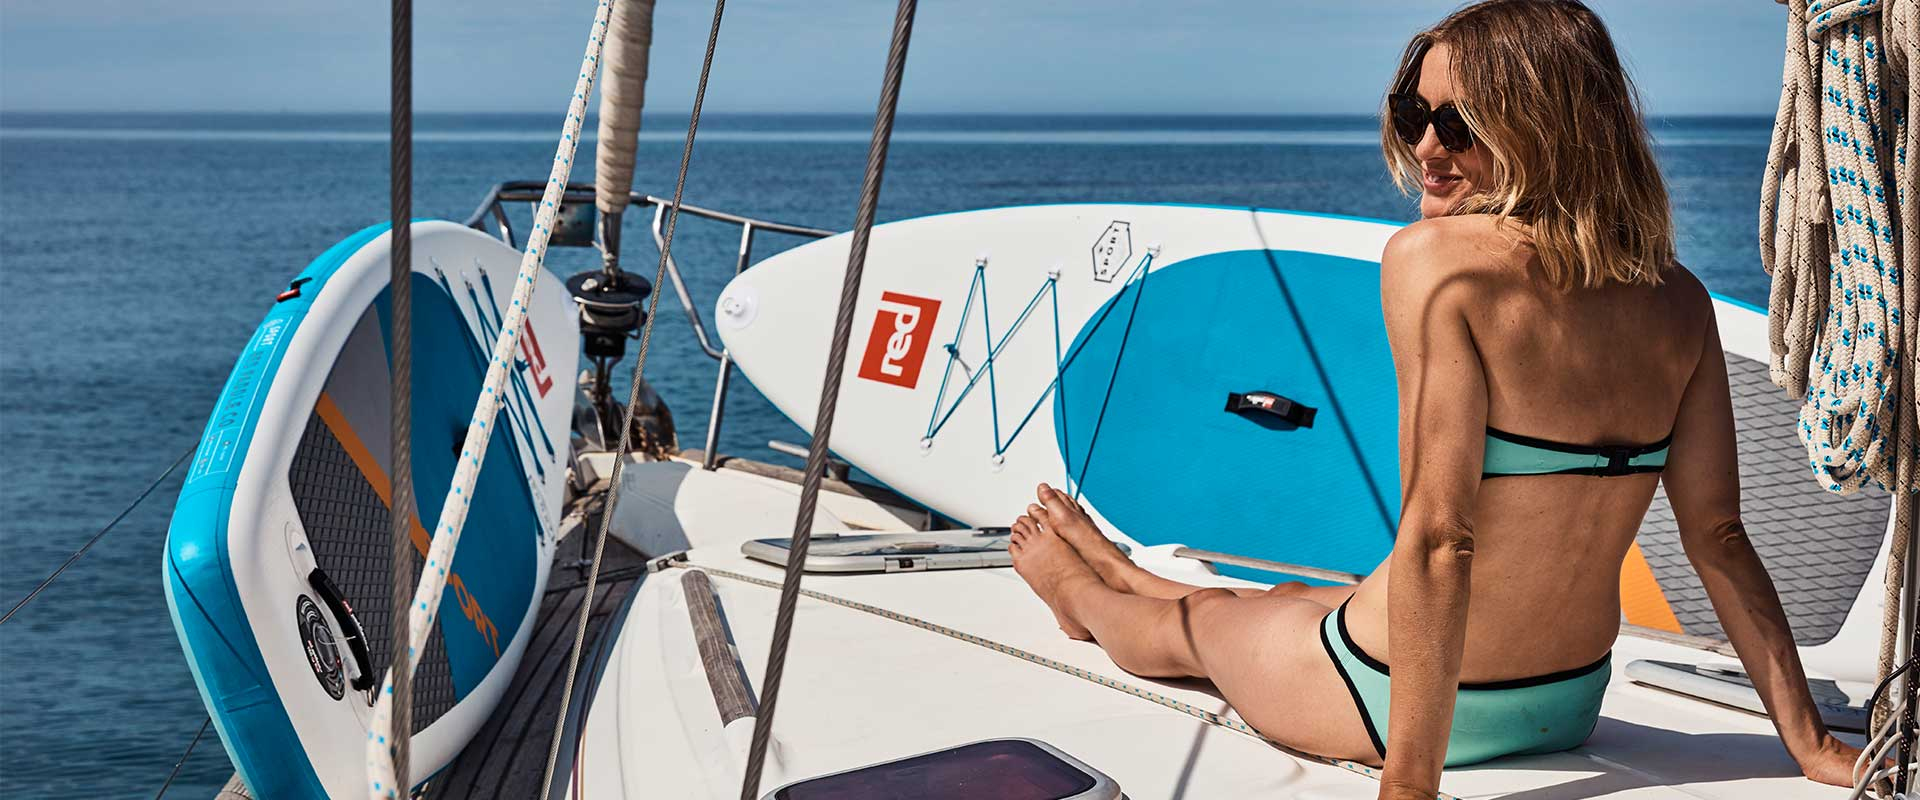 Image of Red Paddle Co board and girl on yatch